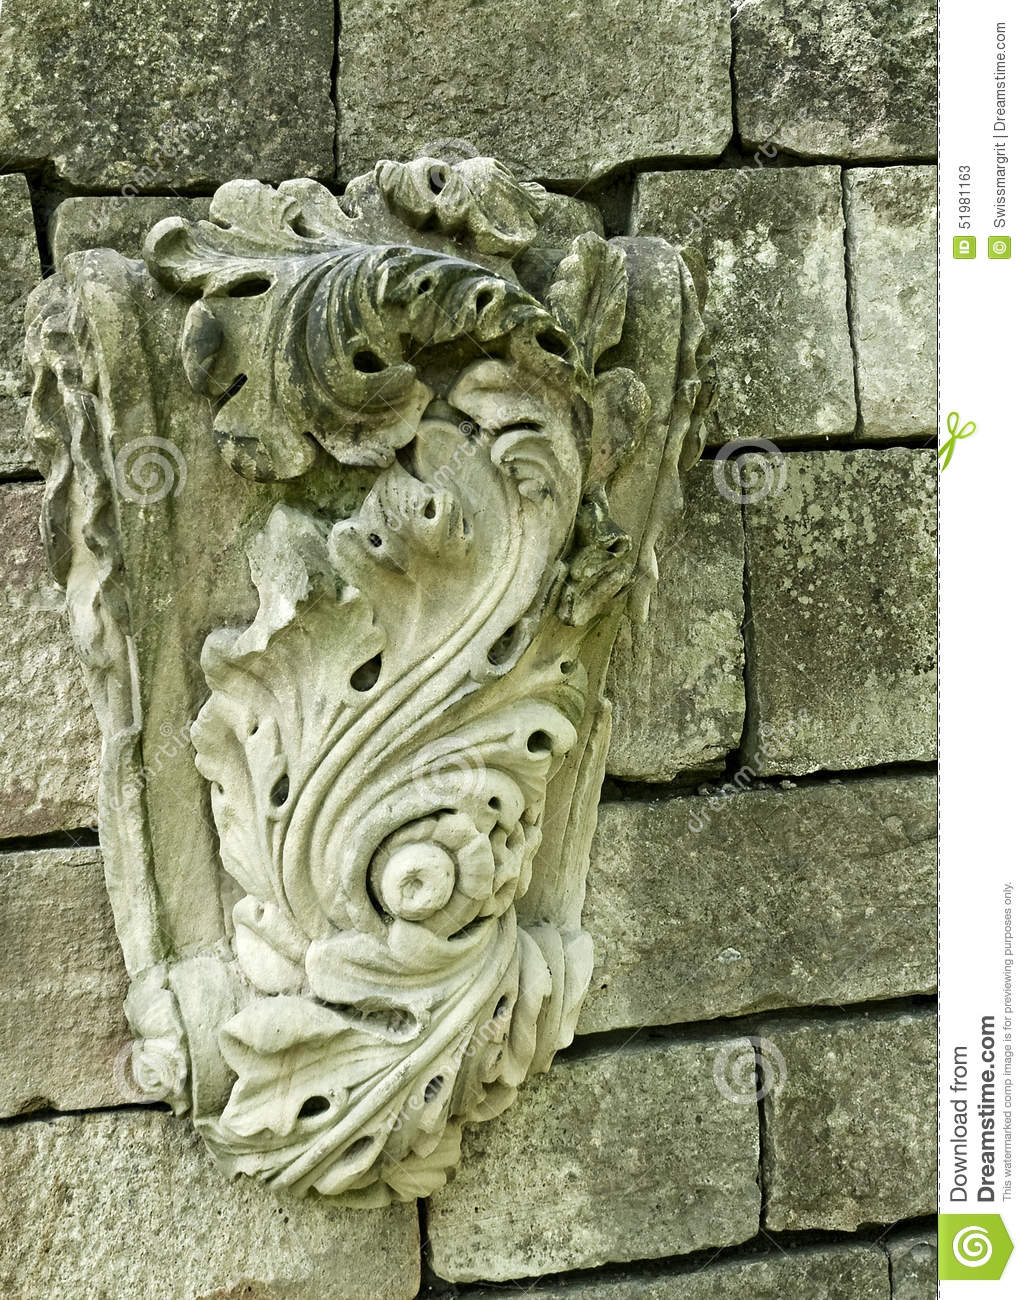 Decorative detail of stone carving stock image